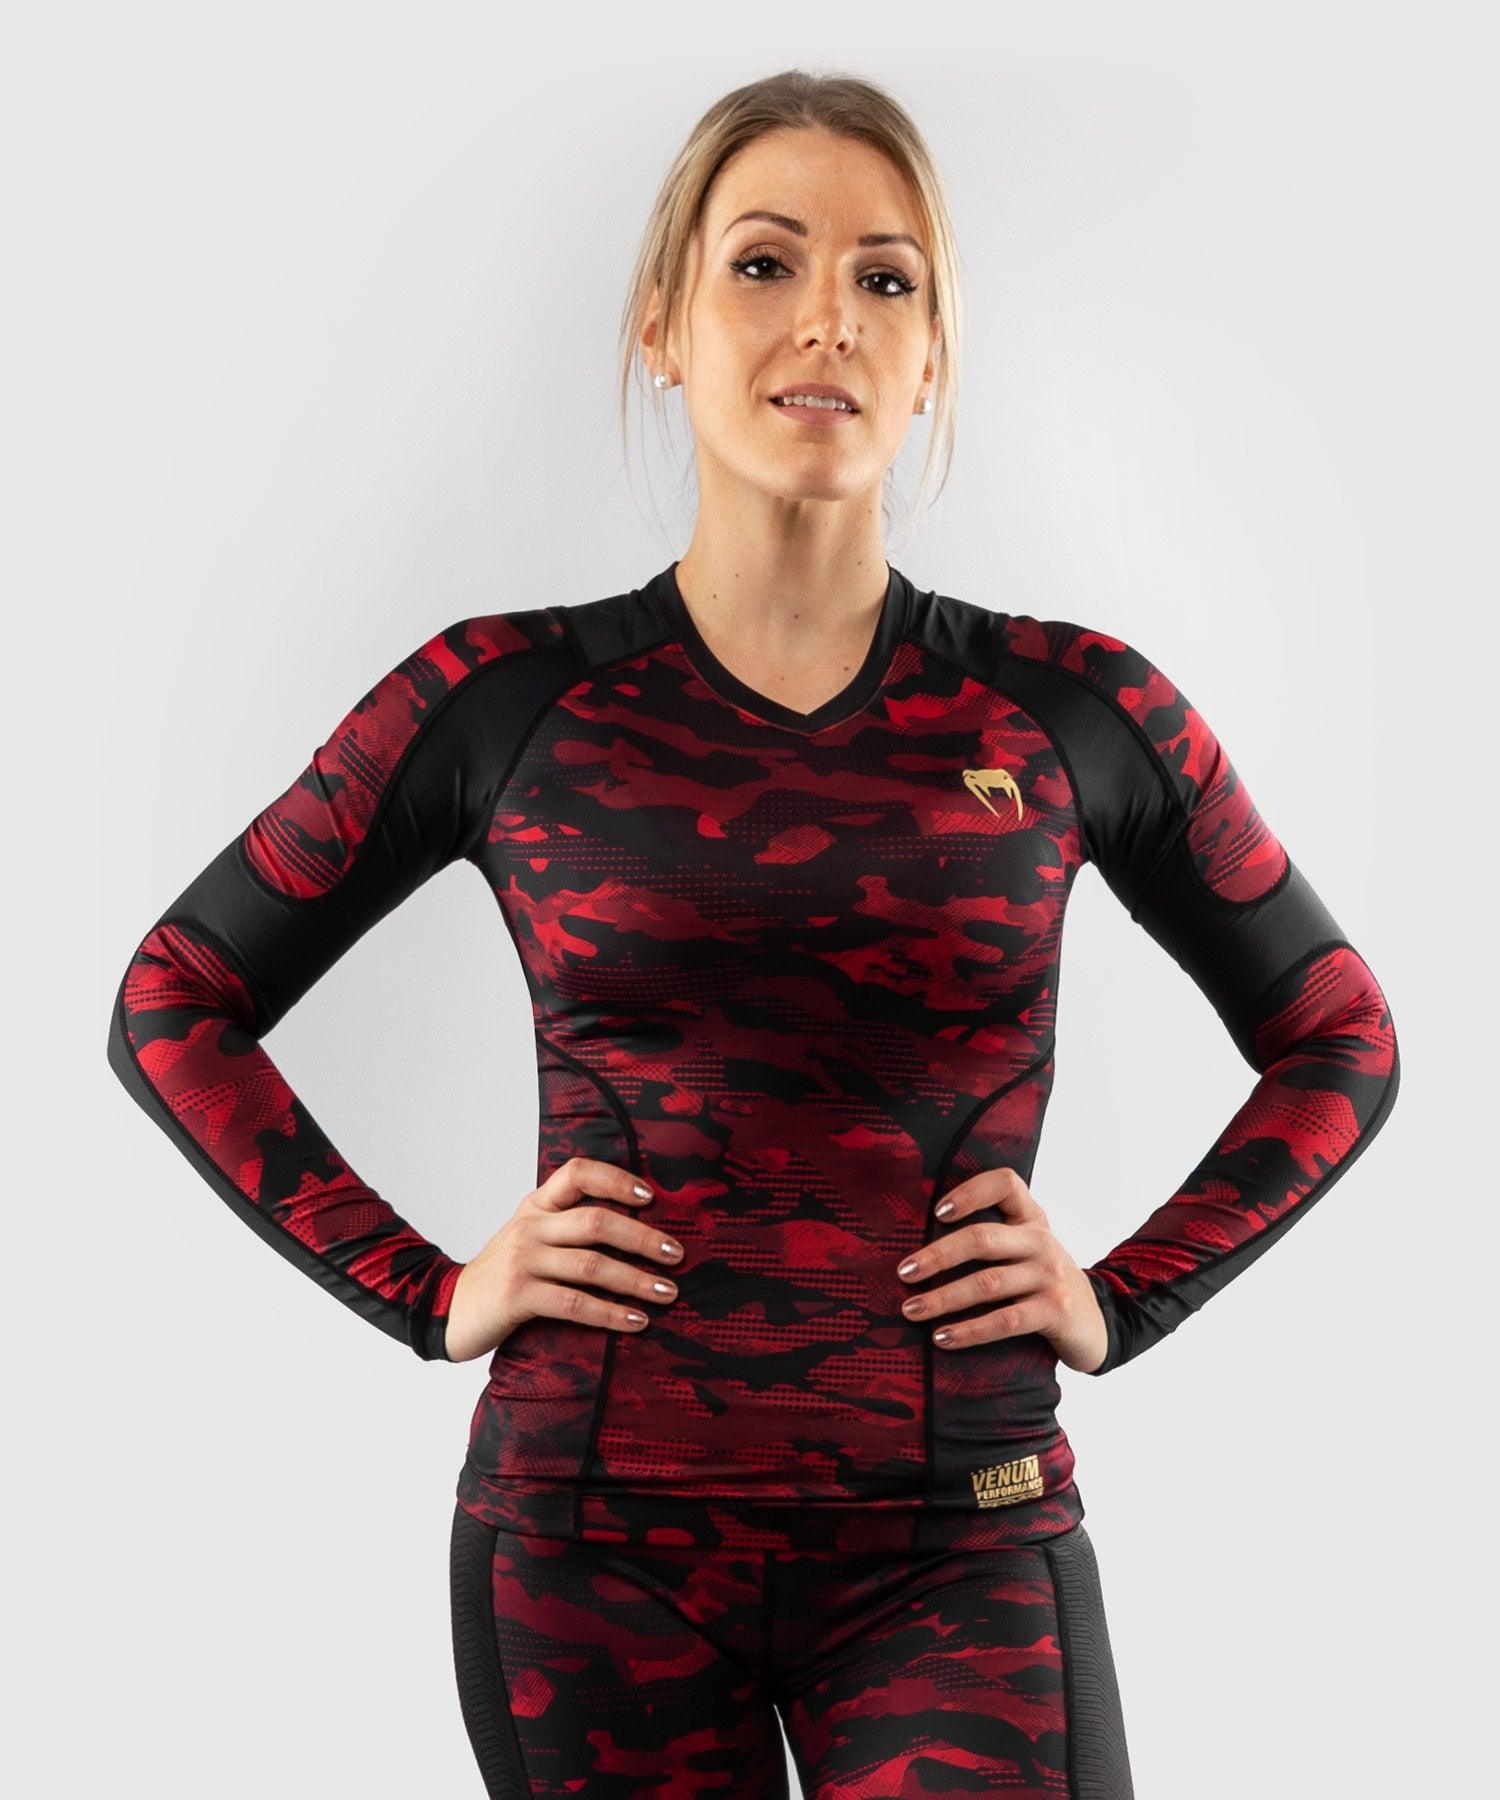 Venum Defender long sleeve Rashguard - for women - Black/Red picture 1